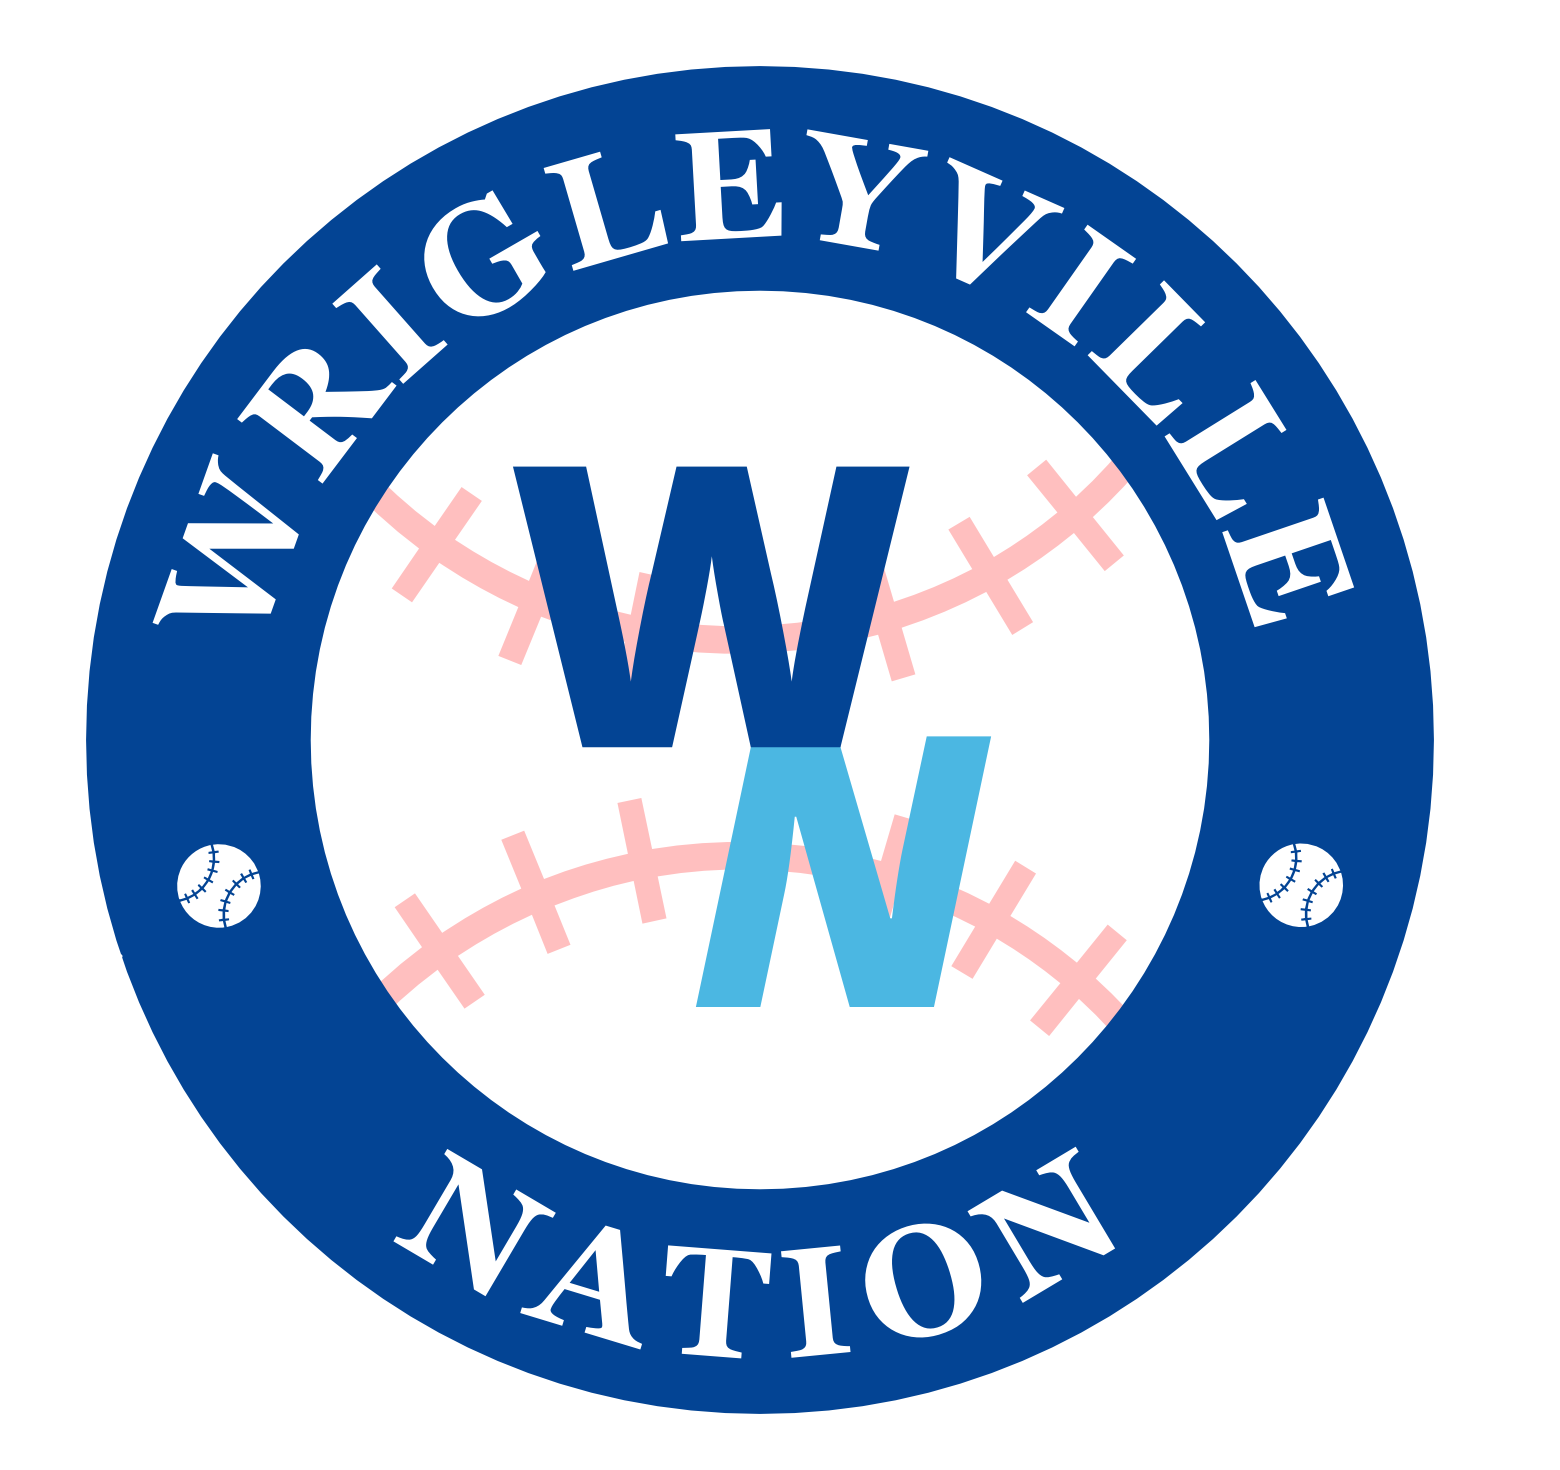 Wrigleyville Nation Ep 210 - Guest: Julie DiCaro, Labor Day, Roster Moves  show art